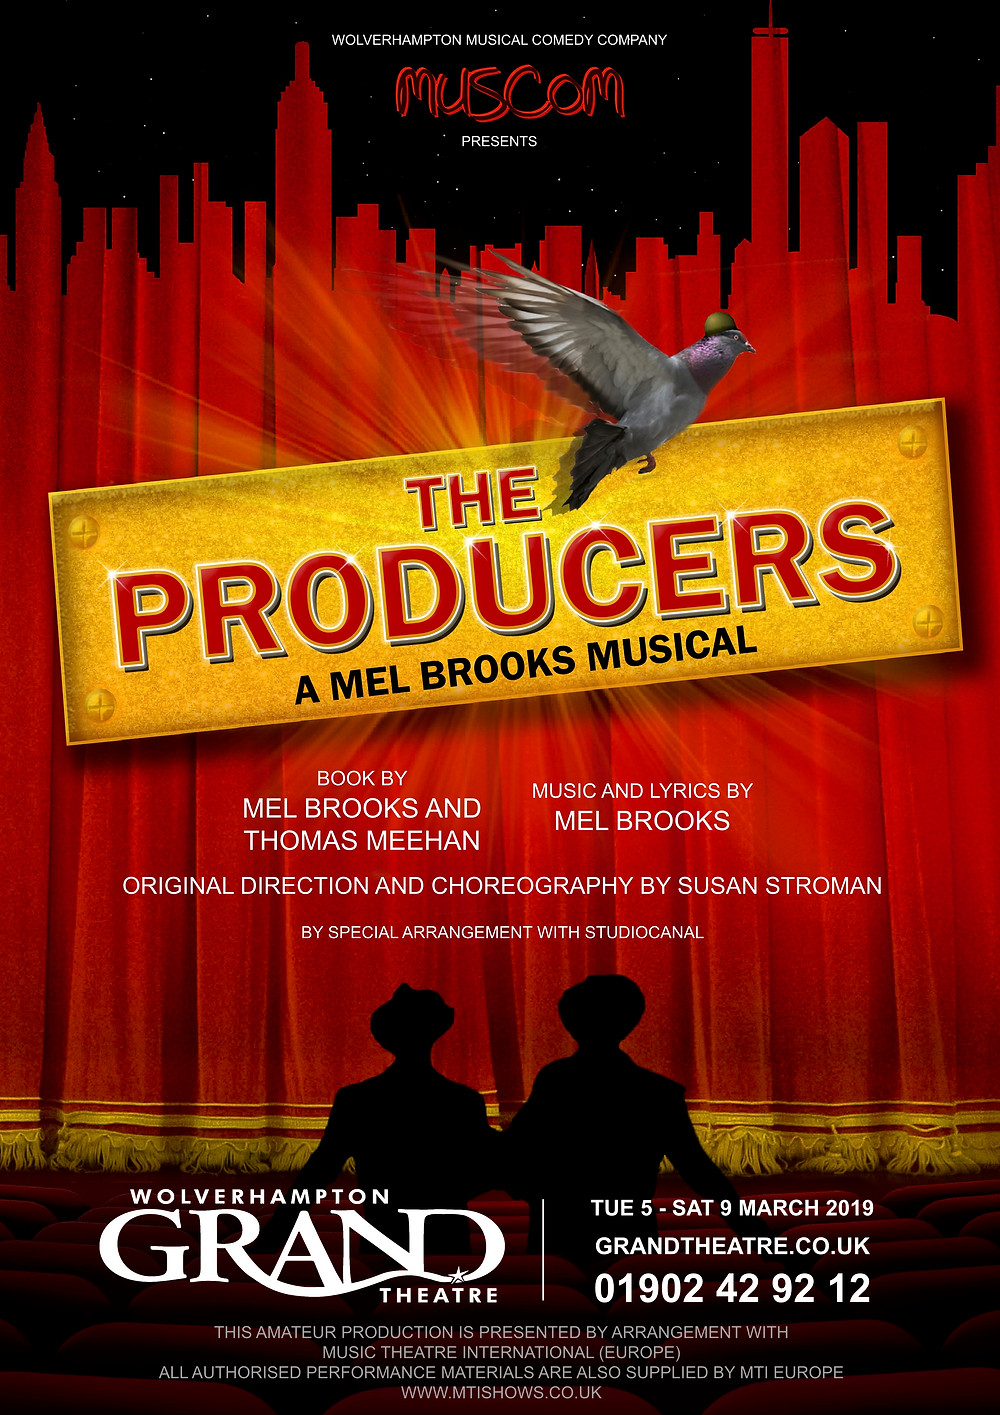 The Producers - Grand Theatre Wolverhampton - Muscom